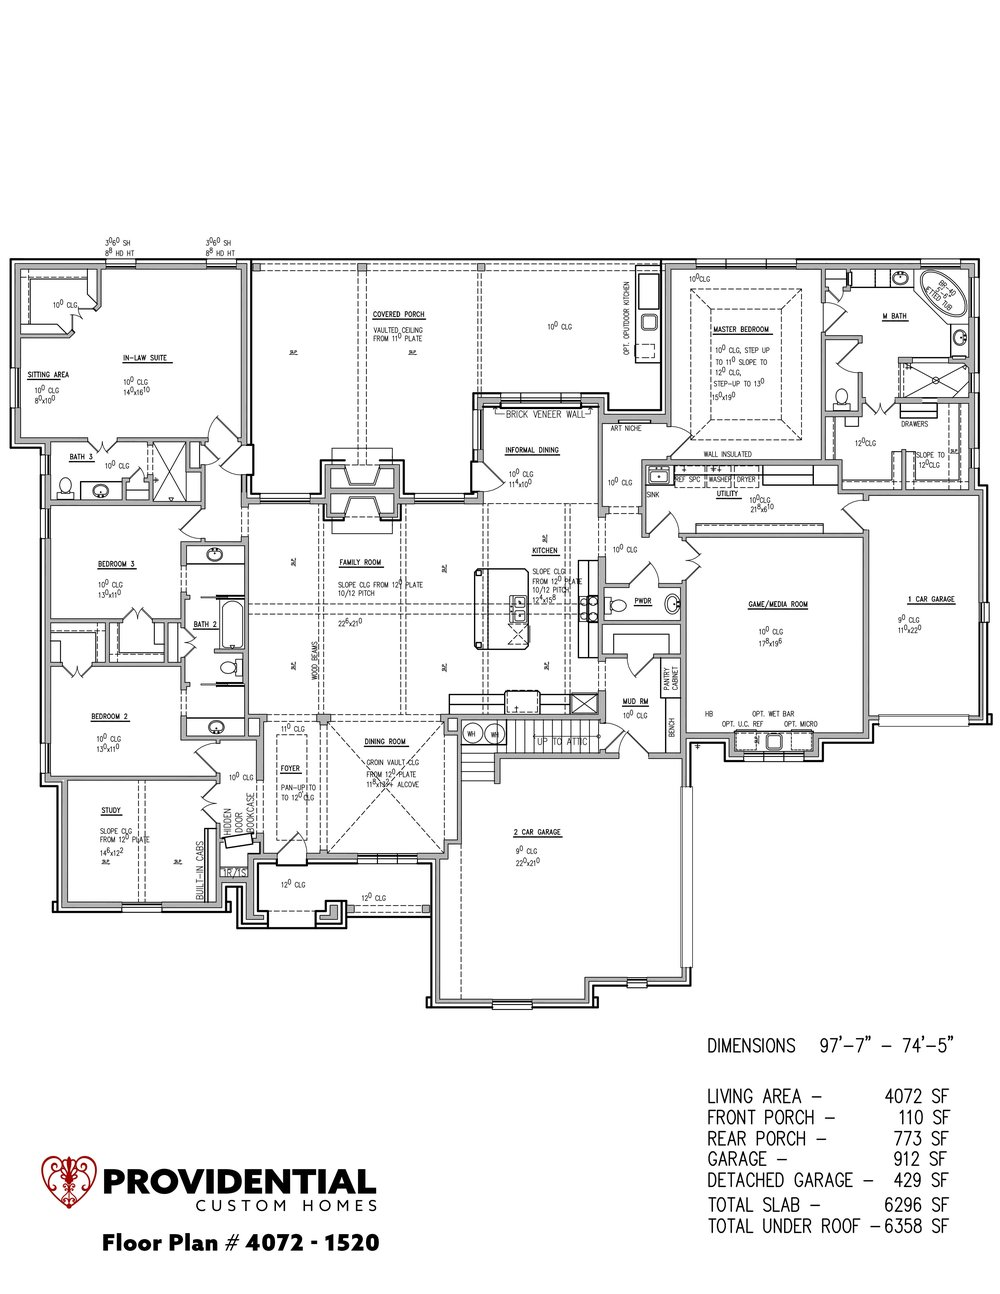 The FLOOR PLAN #4072 - 1520.jpg